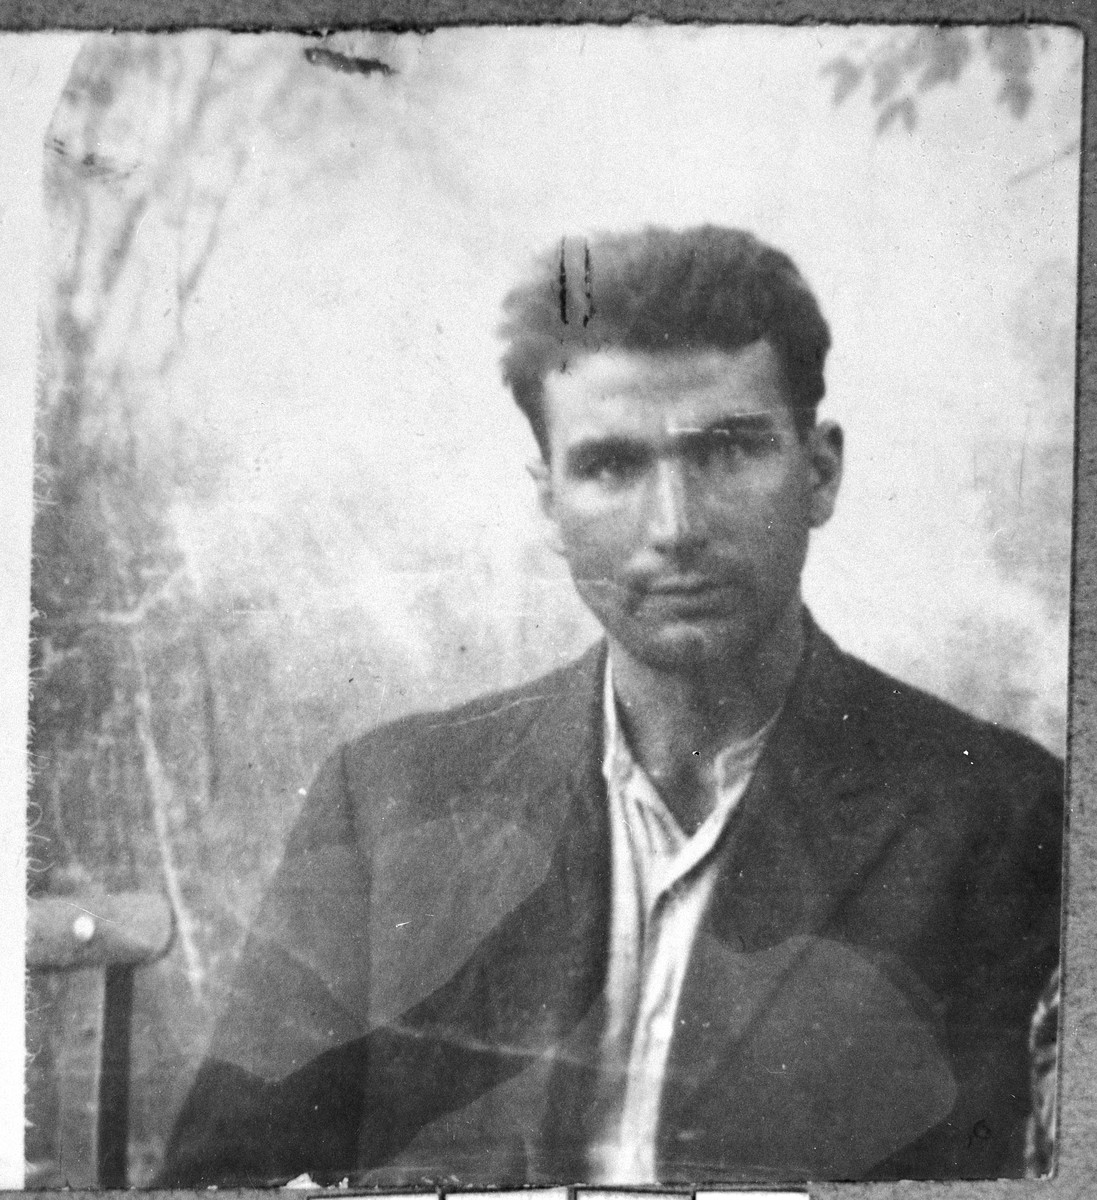 Portrait of Solomon Hasson, son of Yakov Hasson.  He was a sackmaker.  He lived at Davidova 4-5 in Bitola.